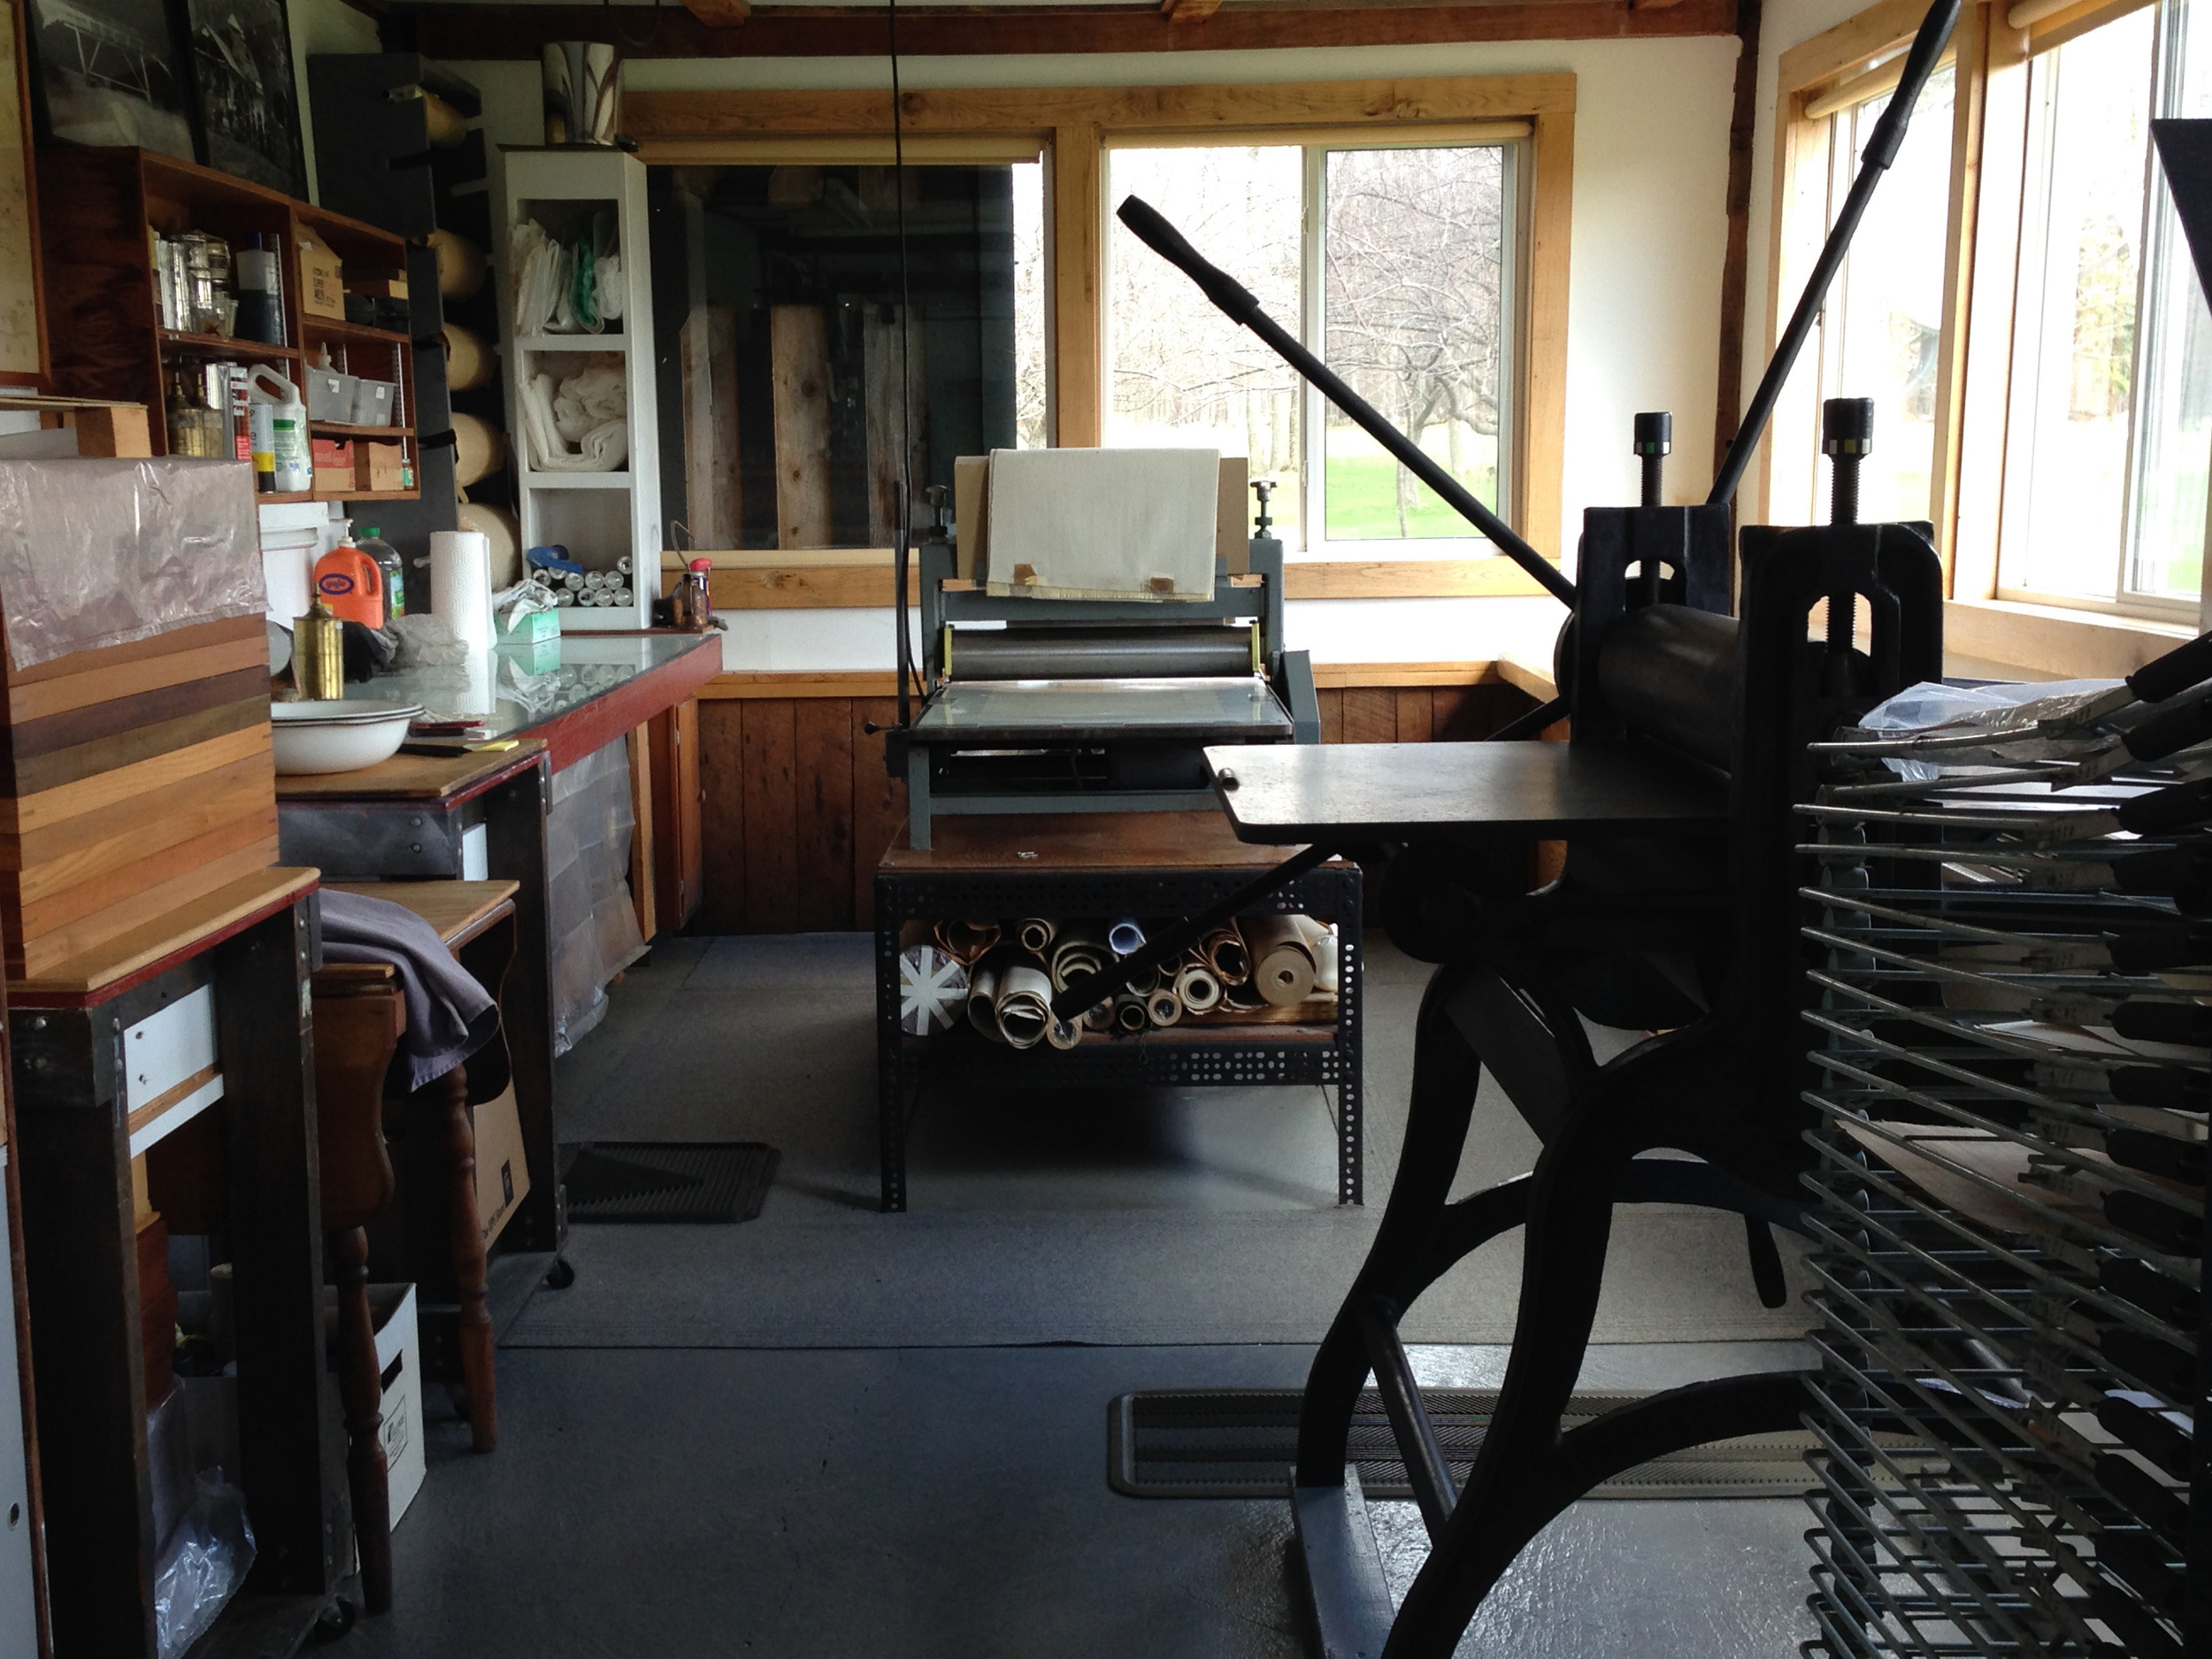 The print studio. A Rembrandt etching press on the right, and a motorized Dickerson combination lithography and etching press in the back. Modest equipment but it does the job.